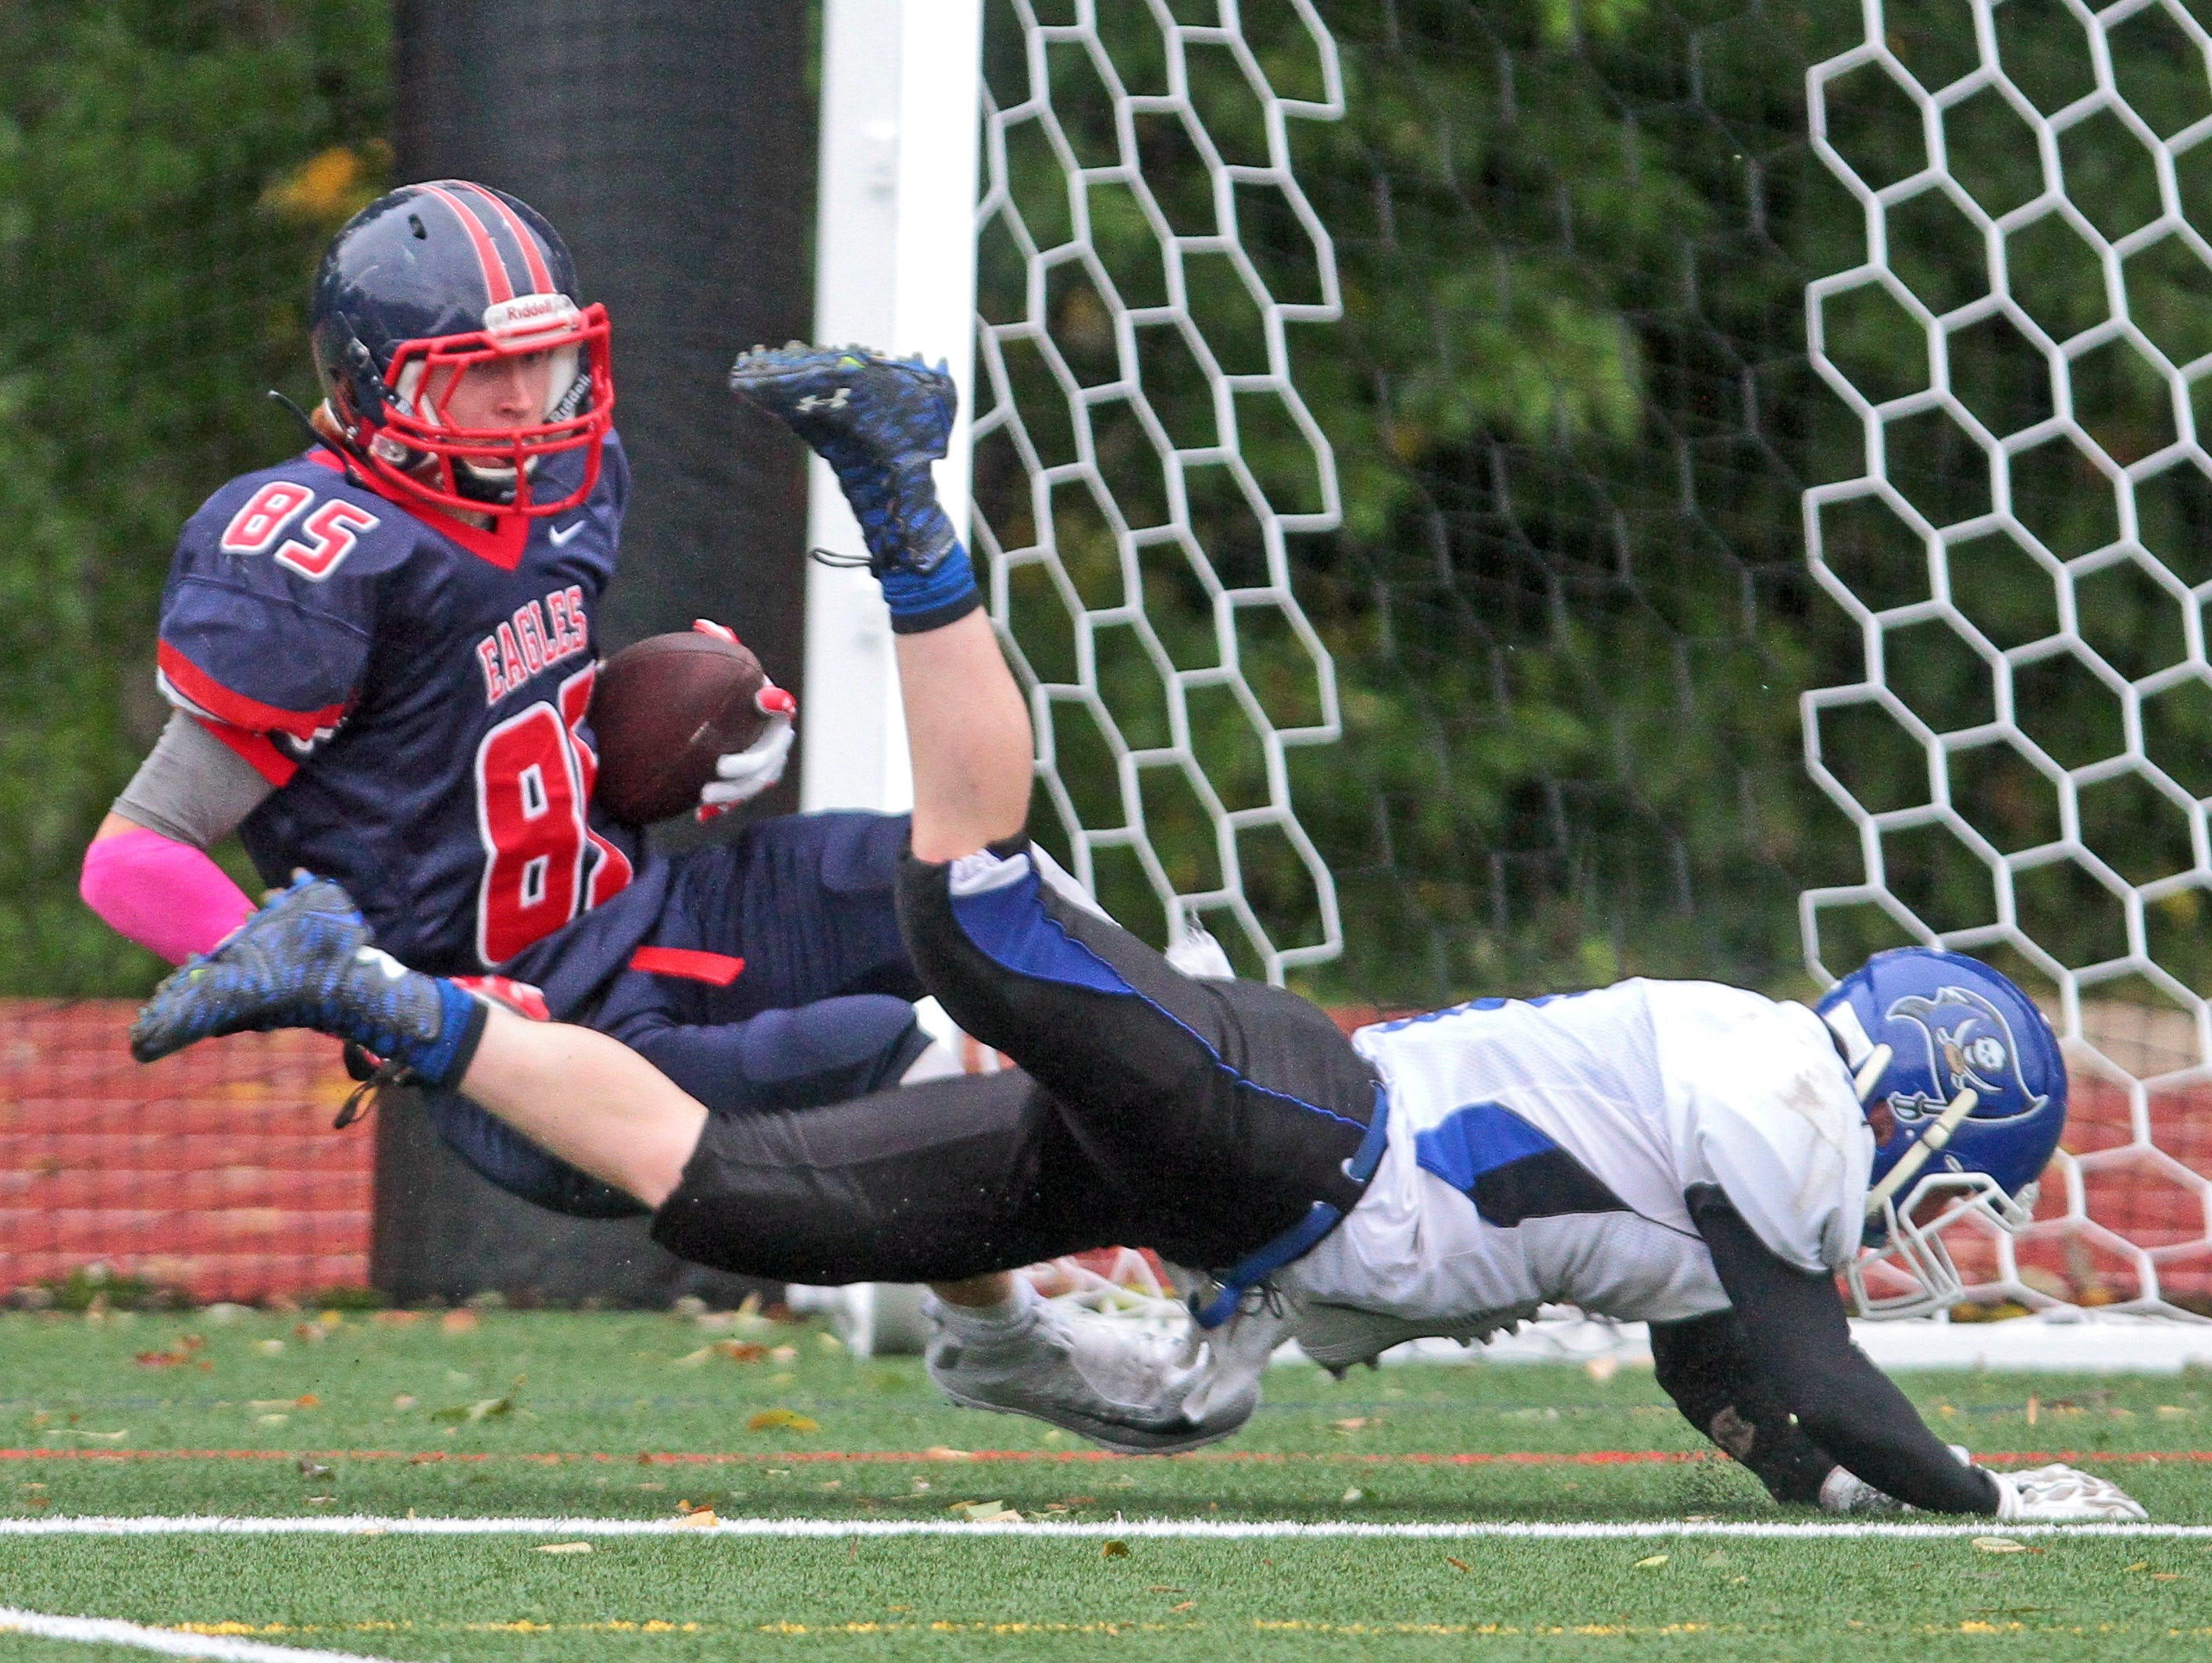 Eastchester's Andrew Shultz gets tangled up with Pearl River's Kyle Murphy in the end zone as he makes a touchdown reception during a varsity football game at Eastchester High School Oct. 3, 2015. Eastchester cruised to a 31-7 victory over Pearl River.